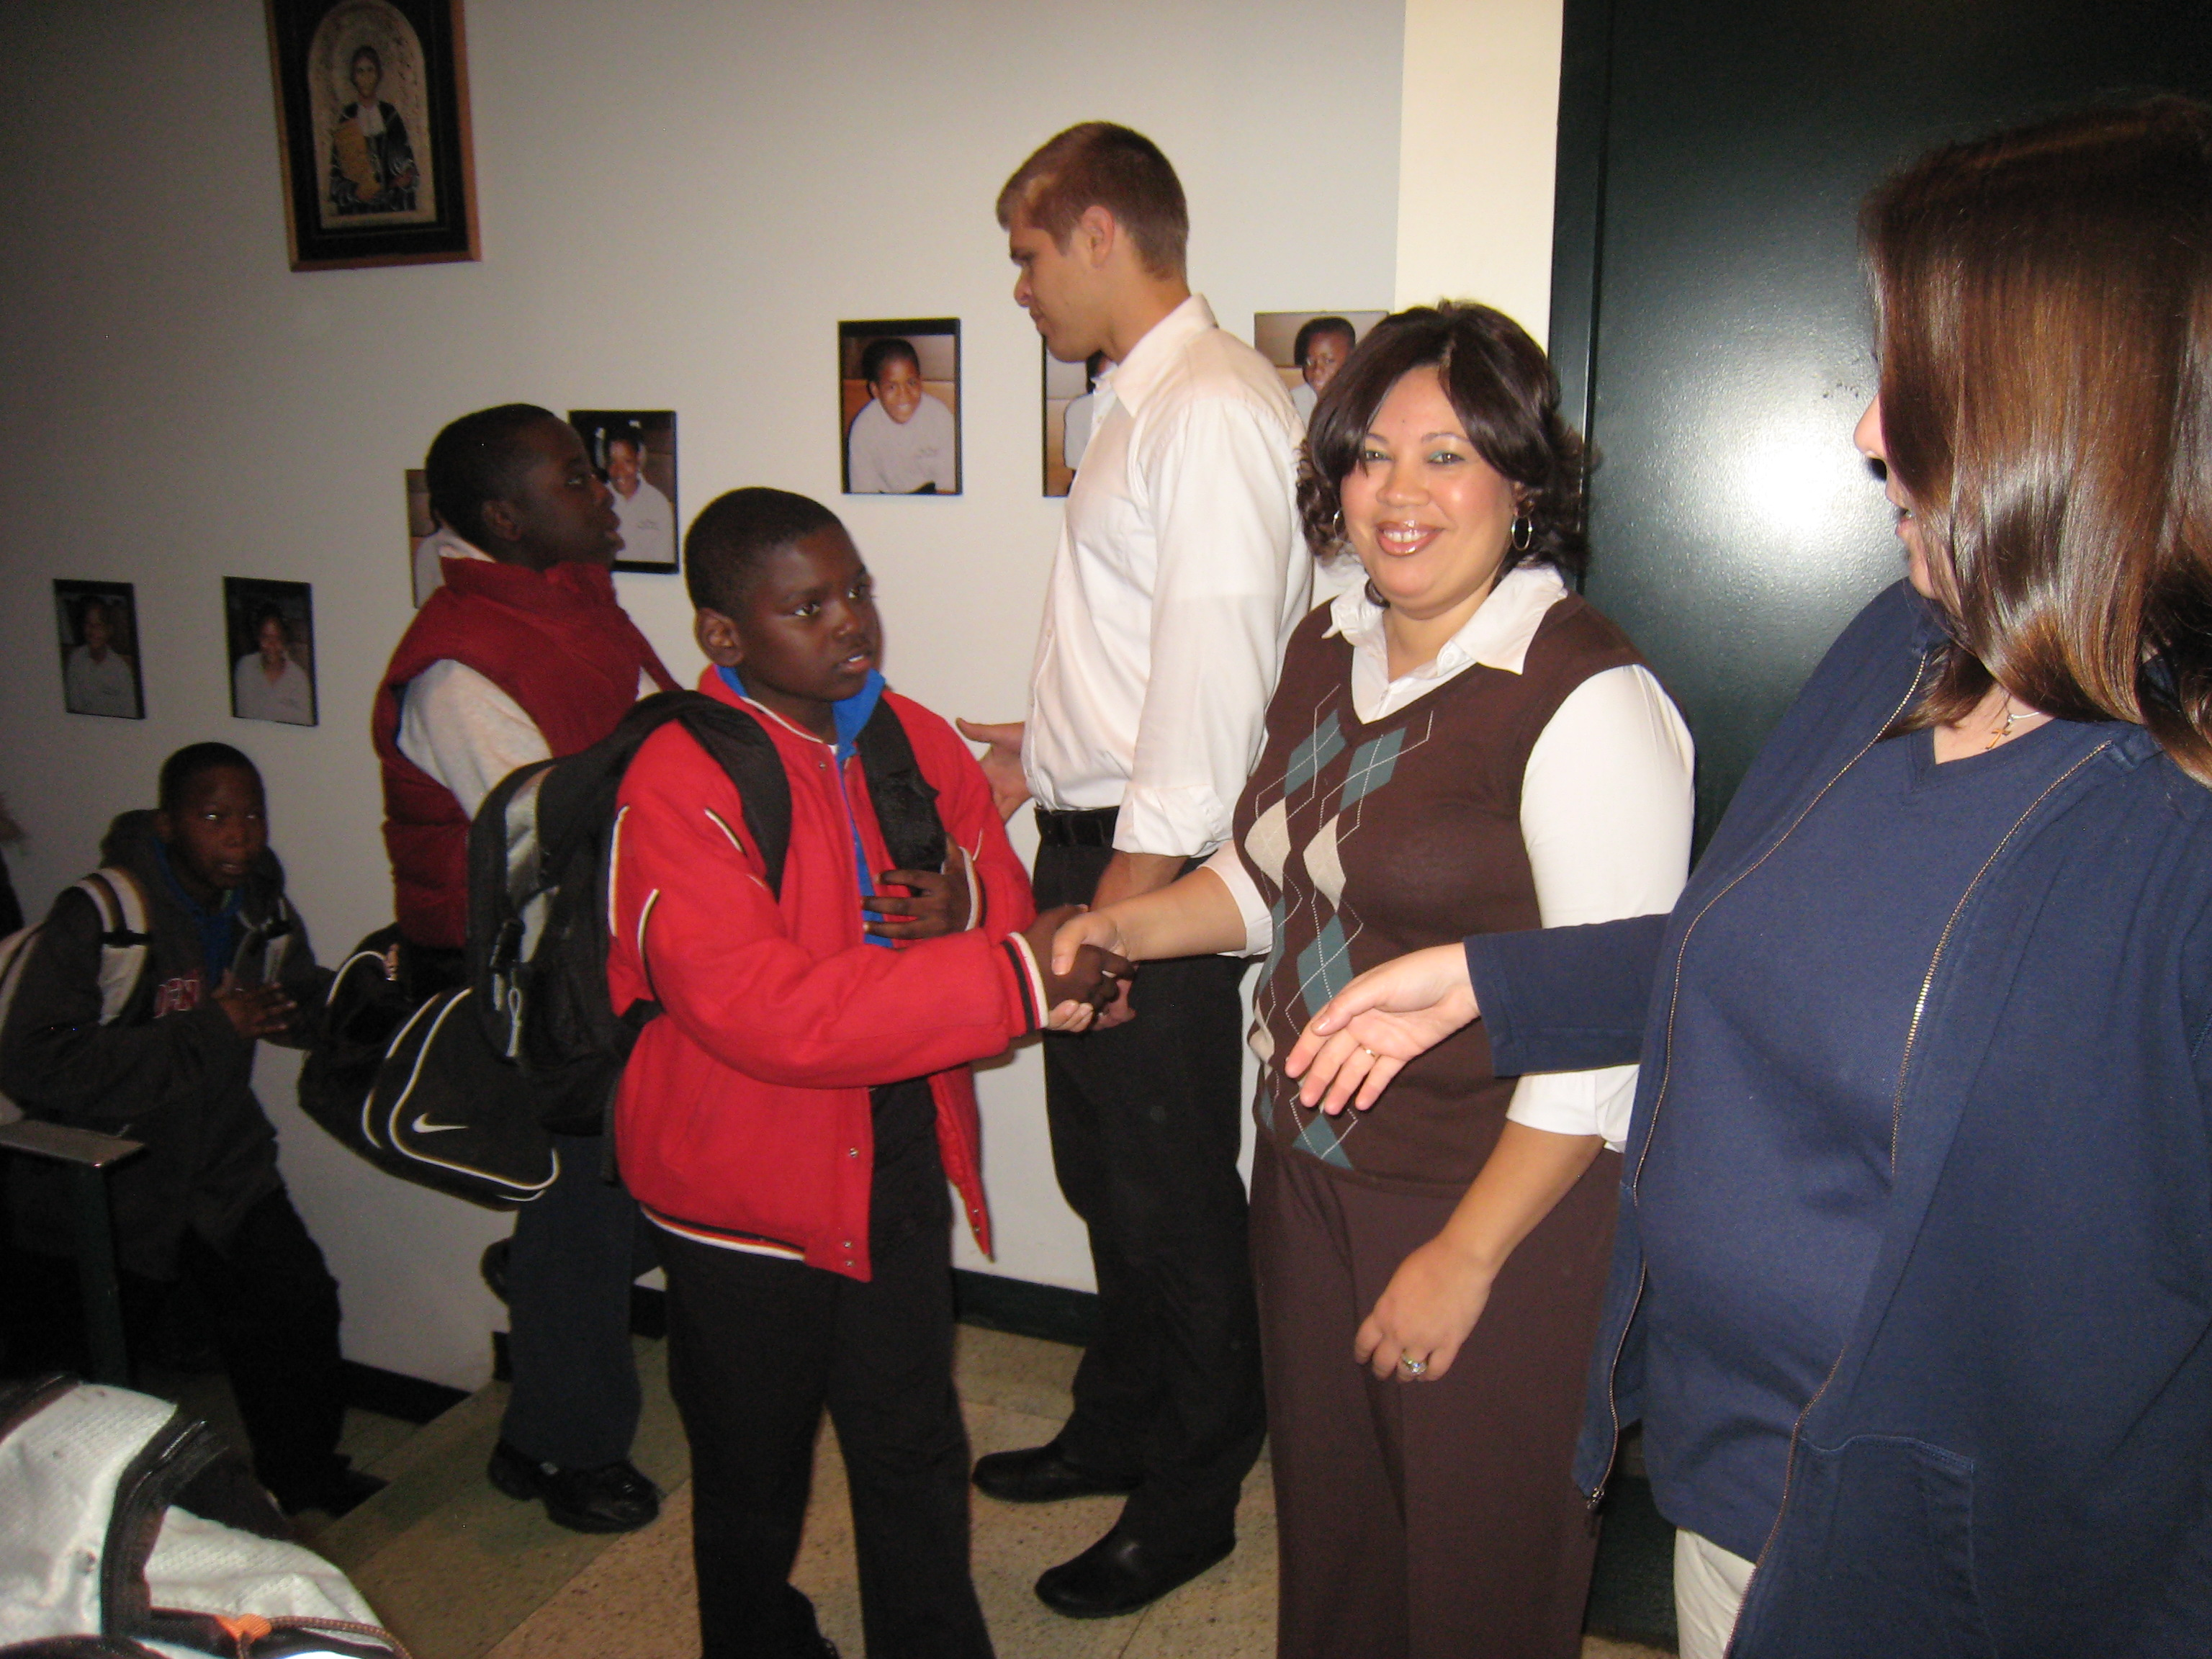 Comer Staff greeting students as they enter the building